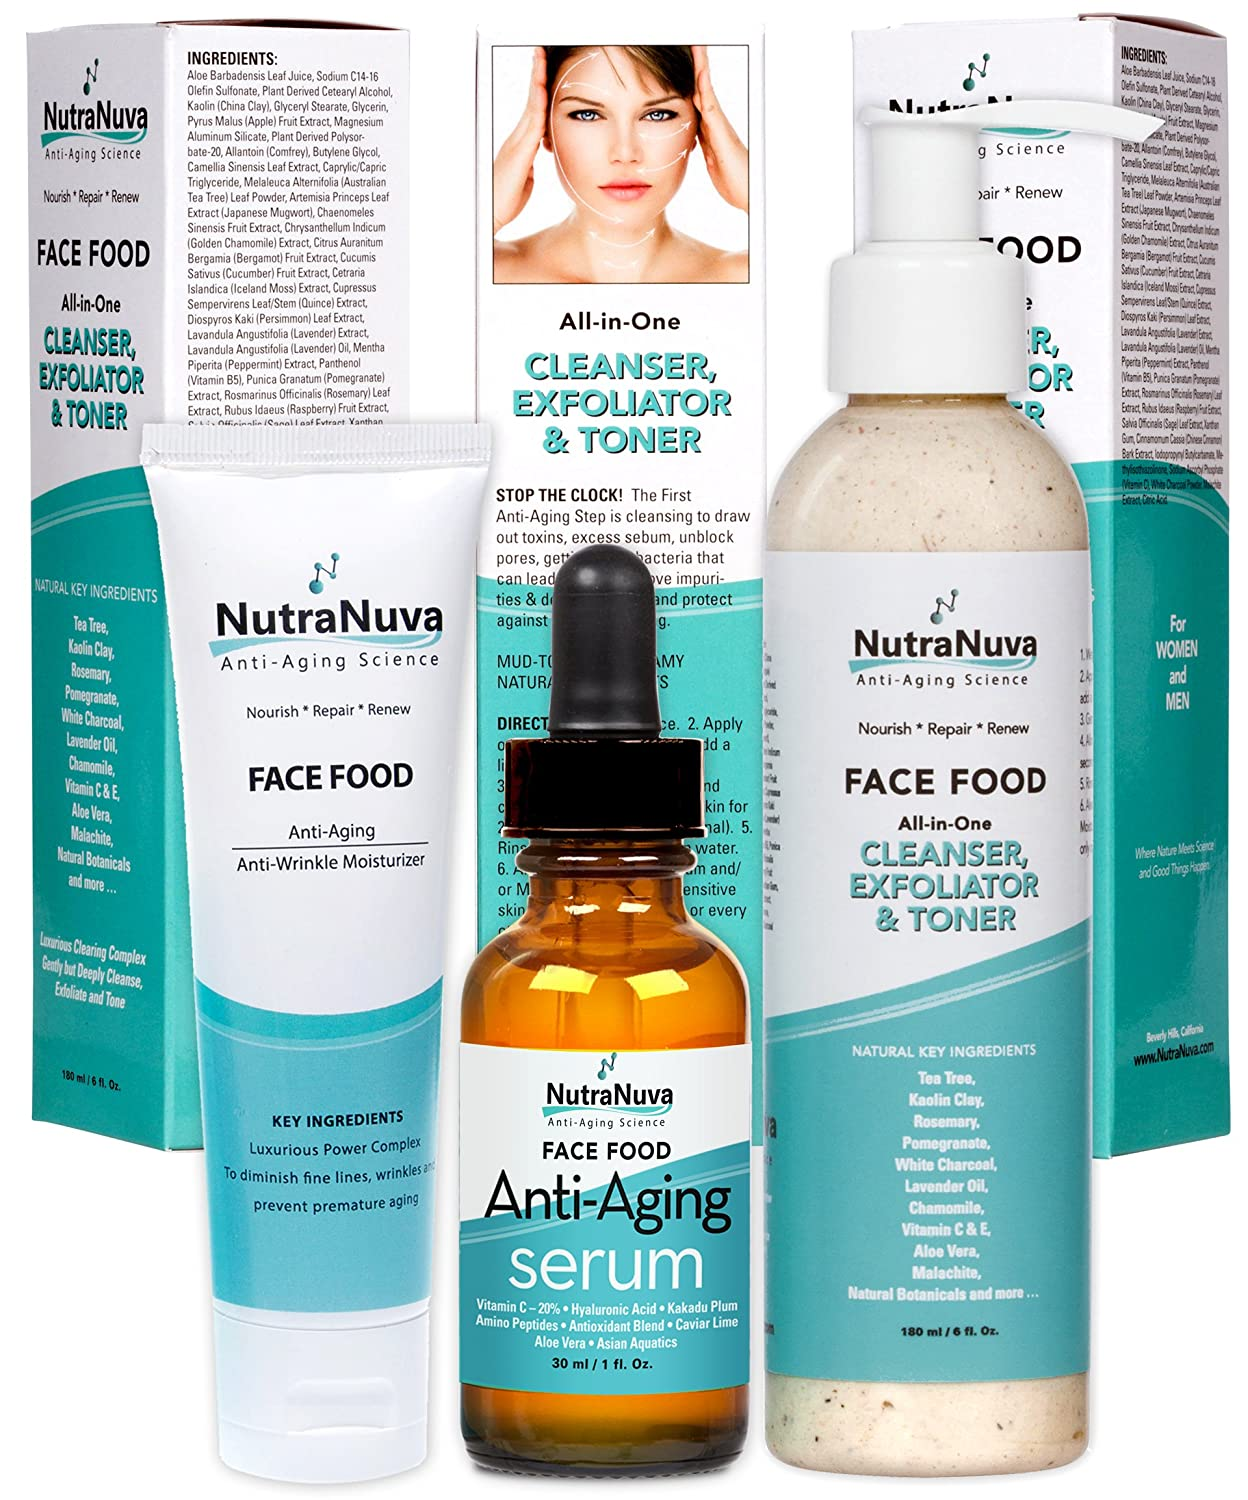 NutraNuva Face Food Natural Skin Care – Stop-the-Clock! Beauty Gift Set -  Anti Aging Anti Wrinkle